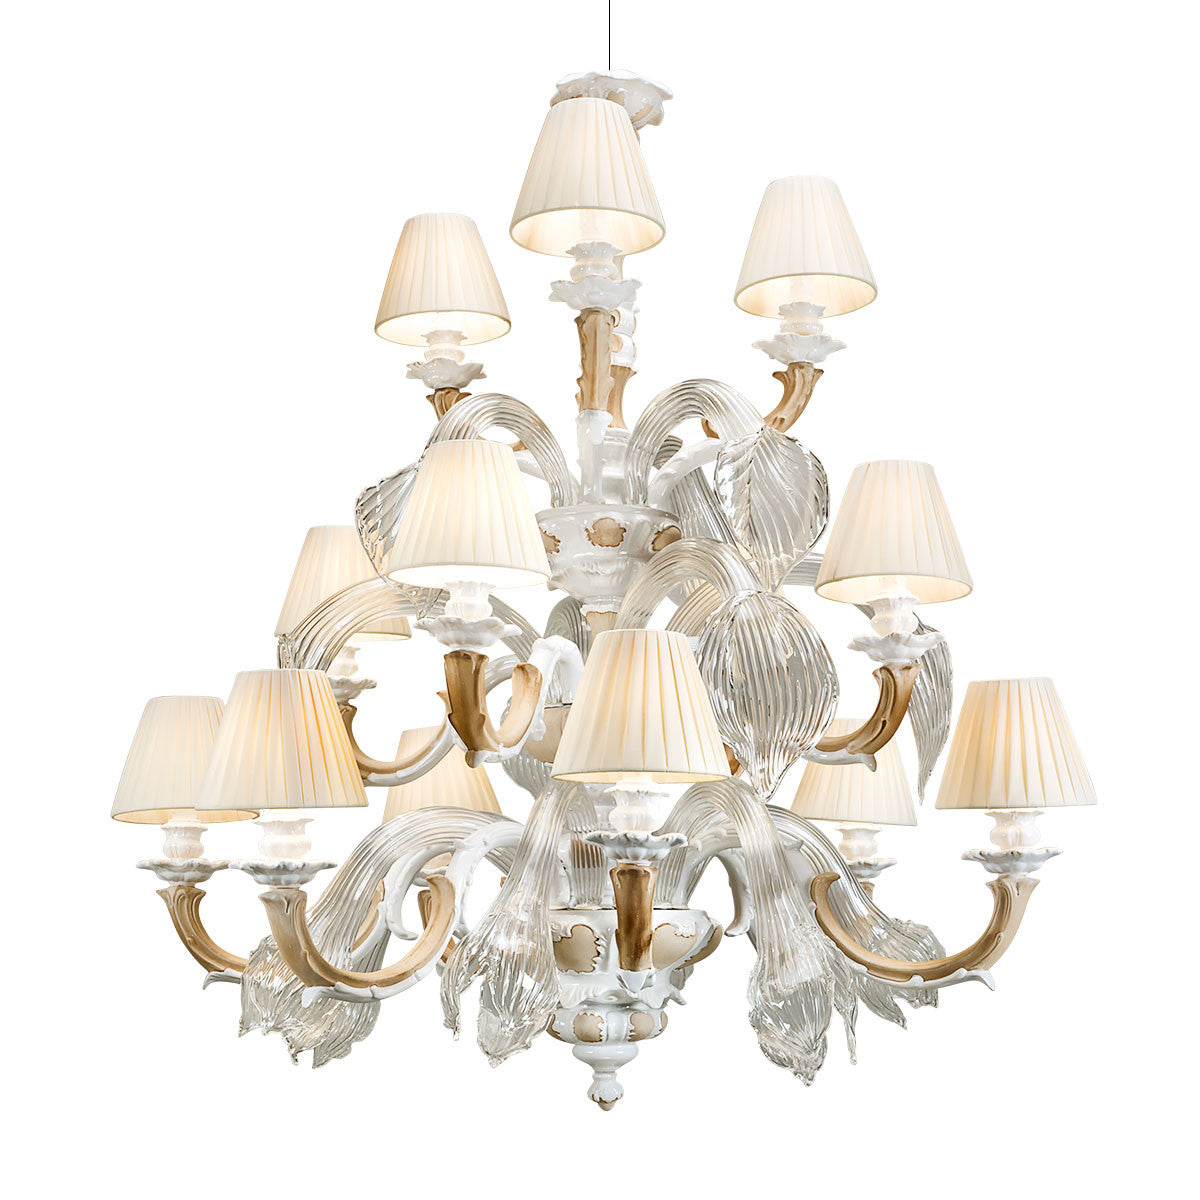 ceramic porcelain Blossom Ducale chandelier with glass leafs